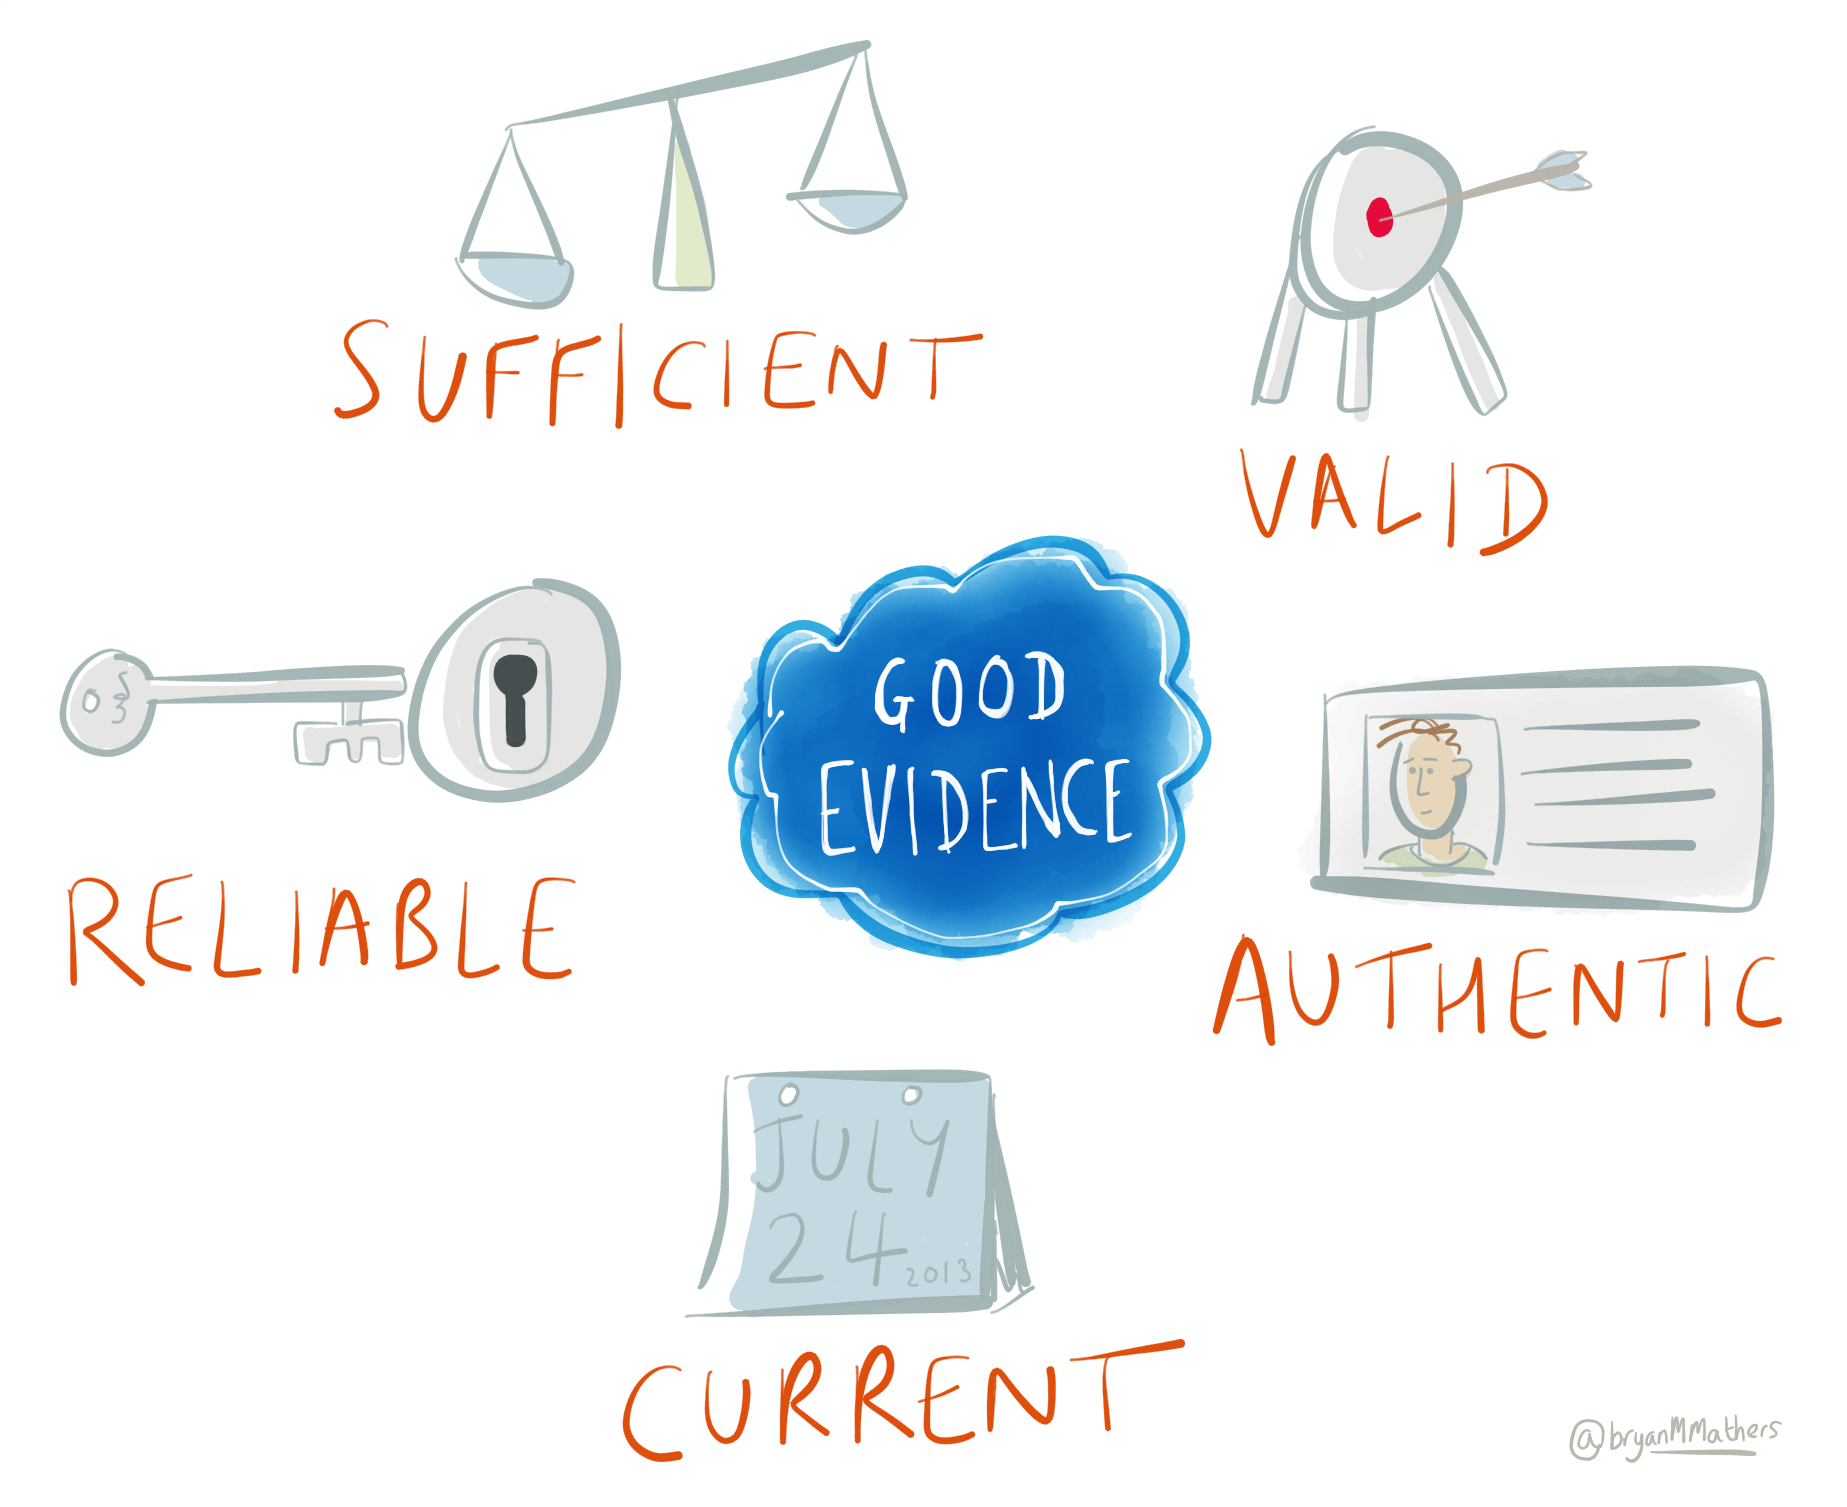 What makes good evidence?